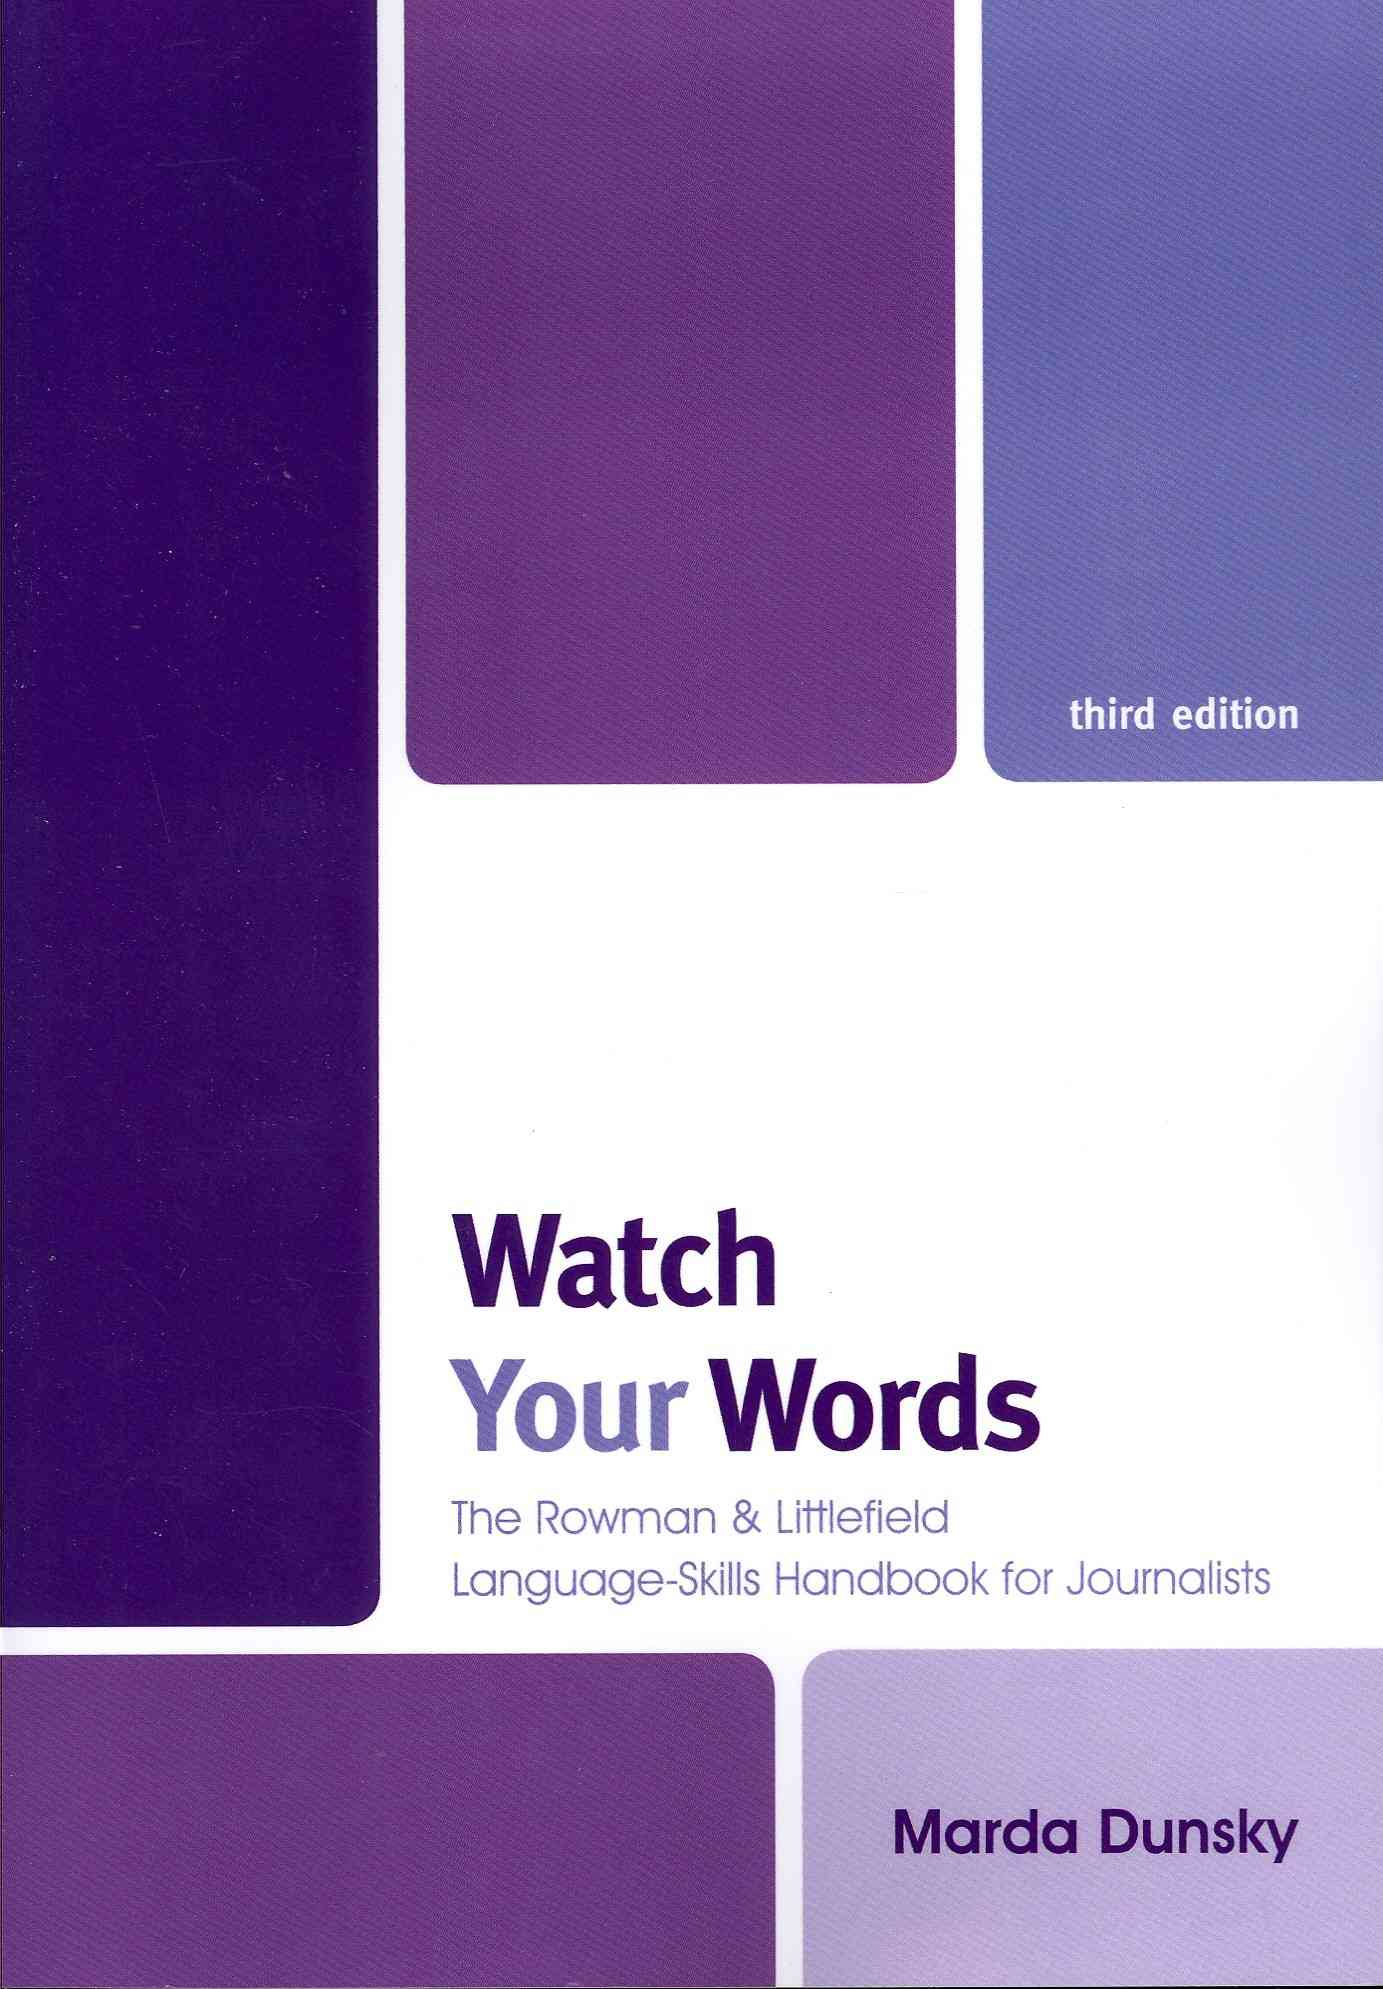 Watch Your Words: The Rowman & Littlefield Language-Skills Handbook for Journalists (Paperback)